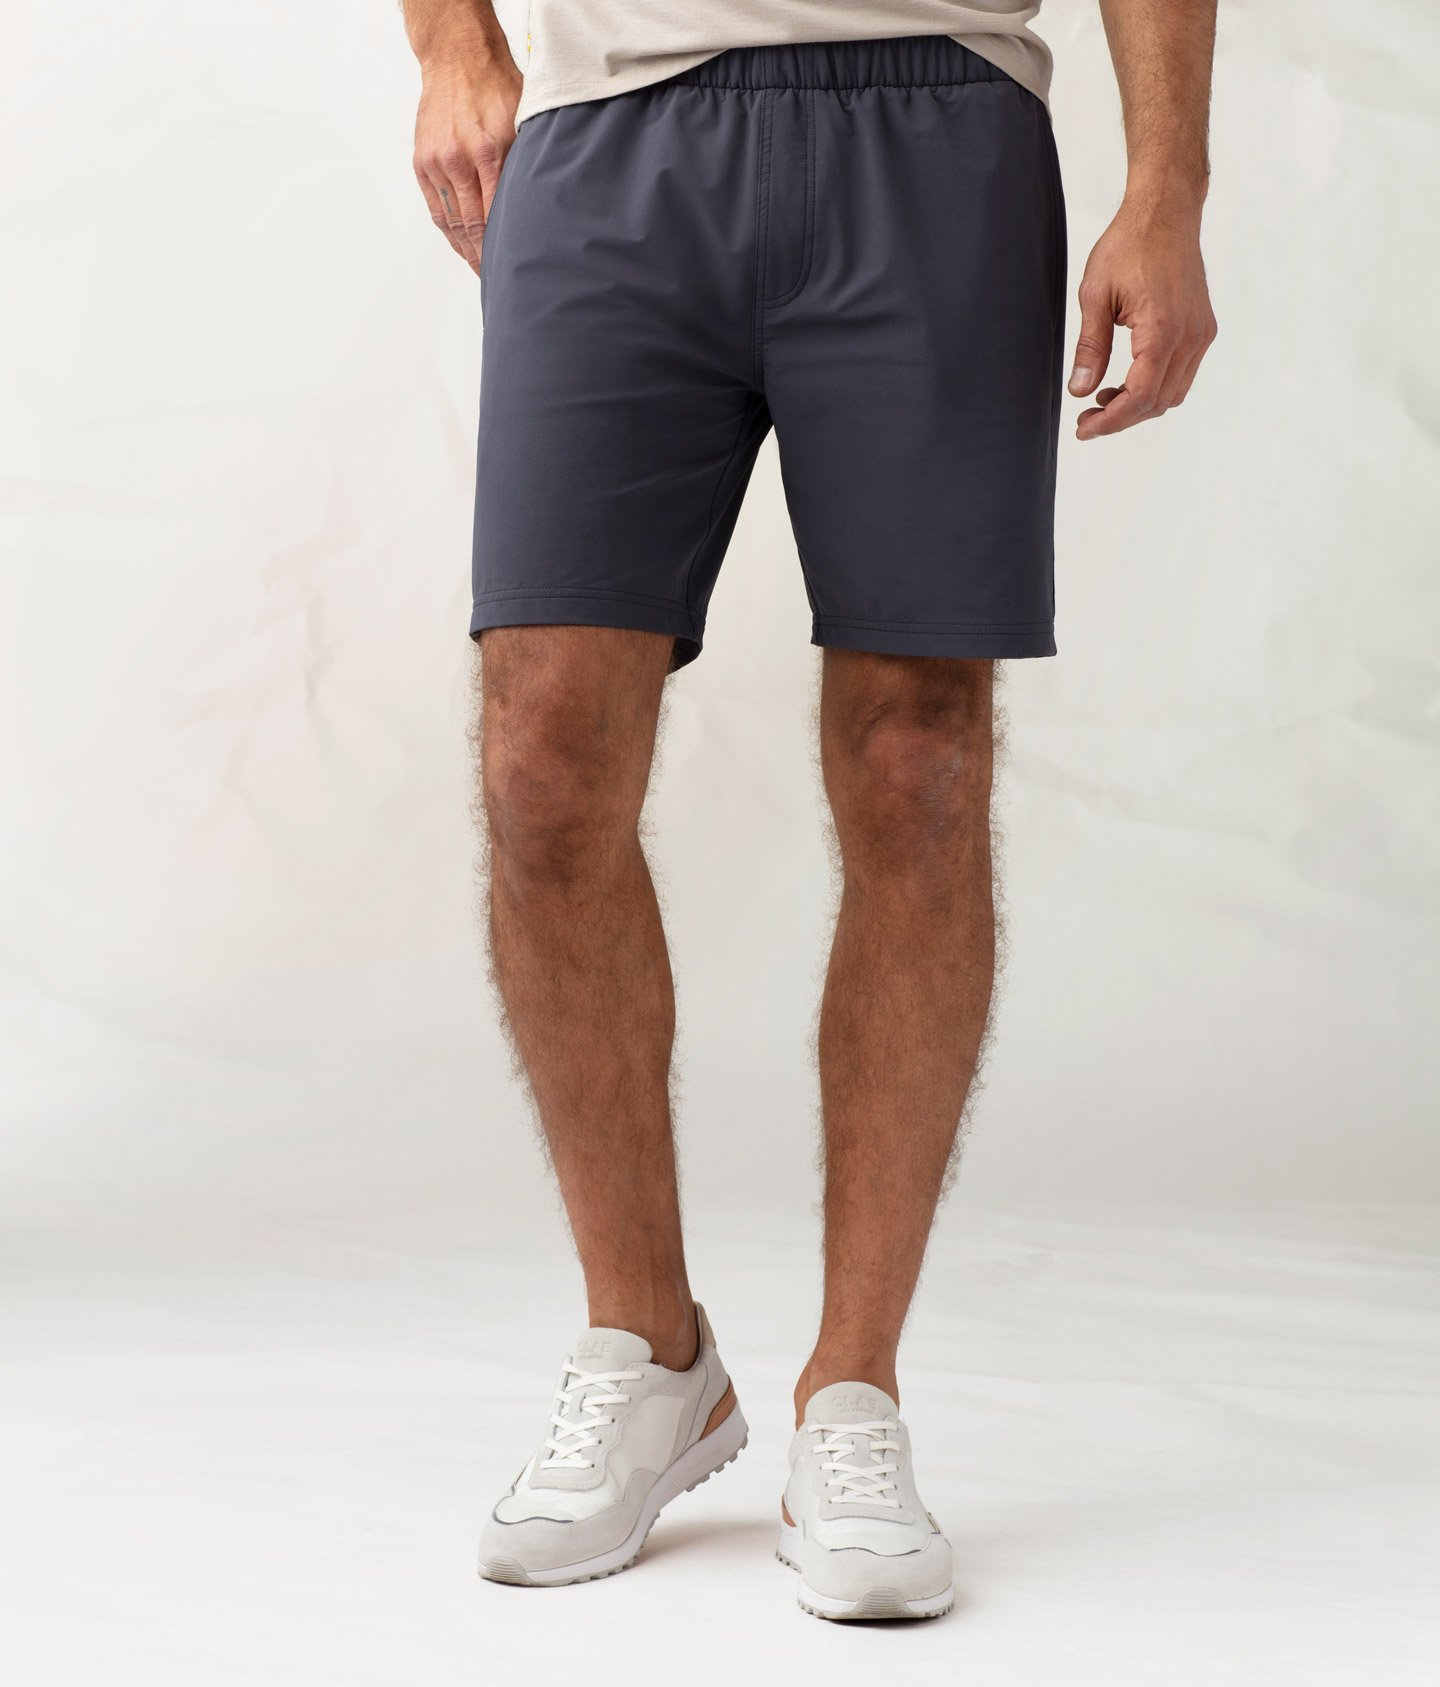 All Over Short (Lined)